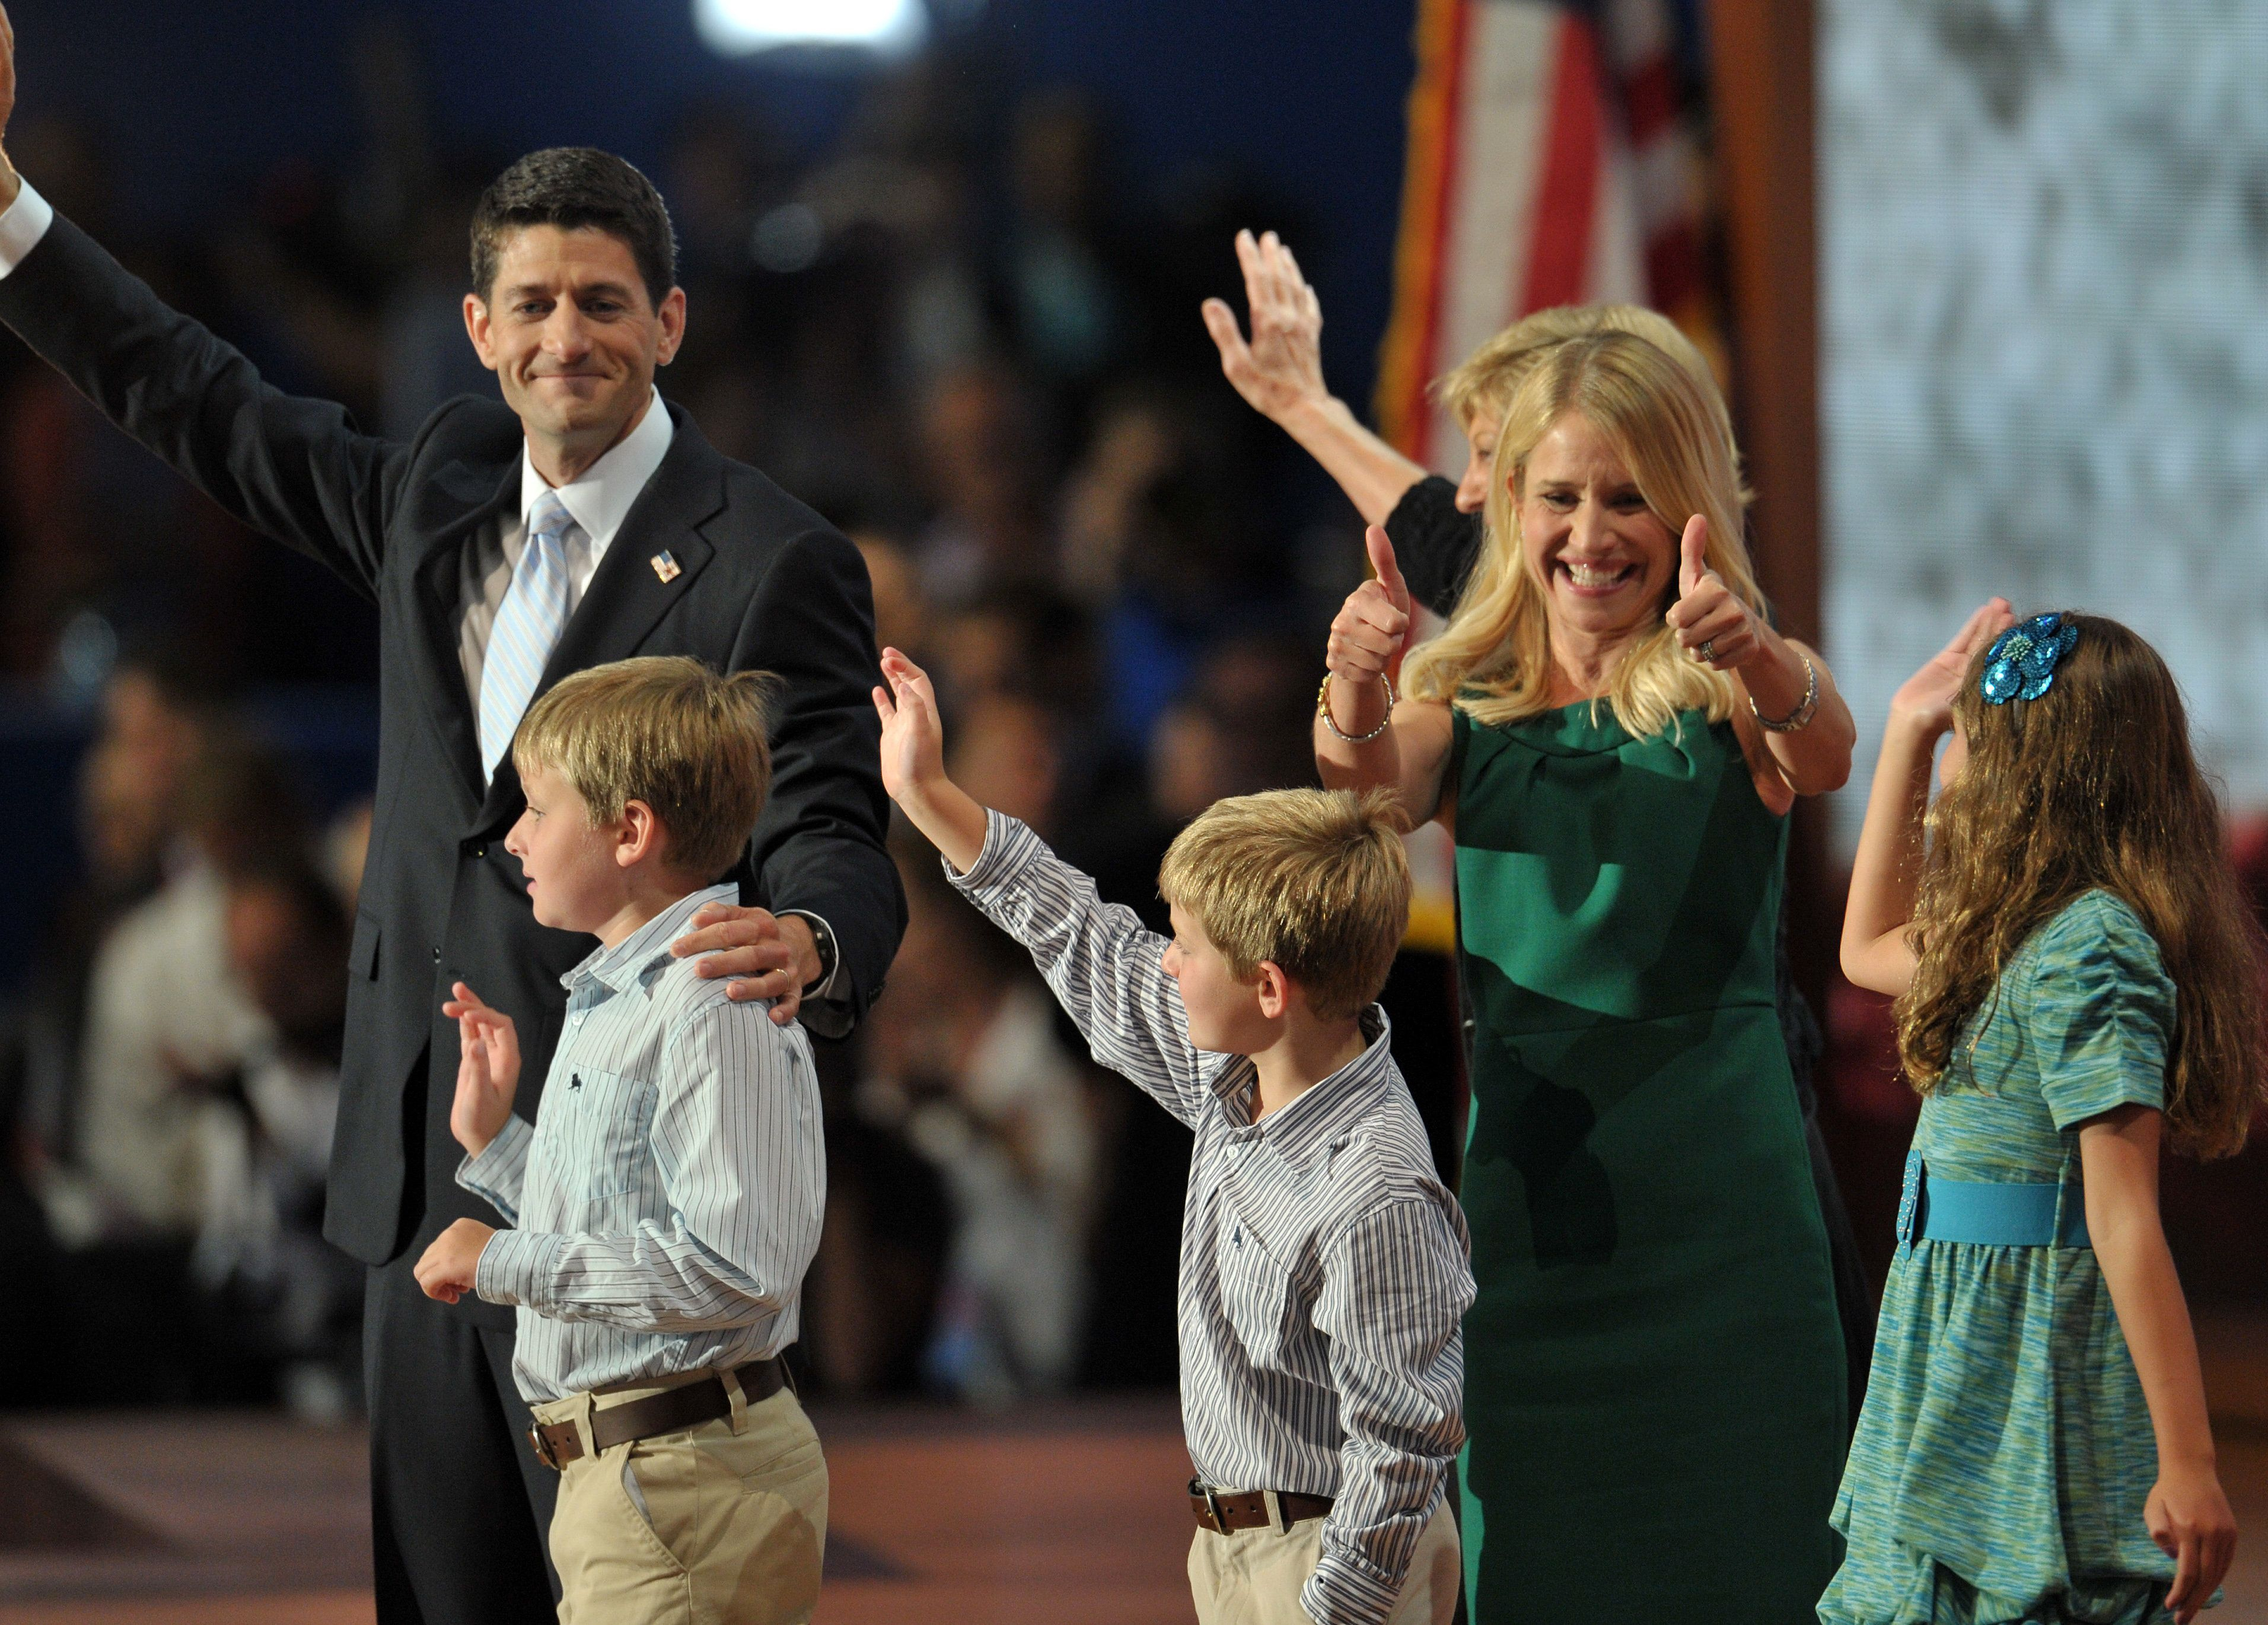 Rep. Paul Ryan's (R-Wis.) family joined him on stage at the Republican National Convention in 2012, when he was Mitt Romney's